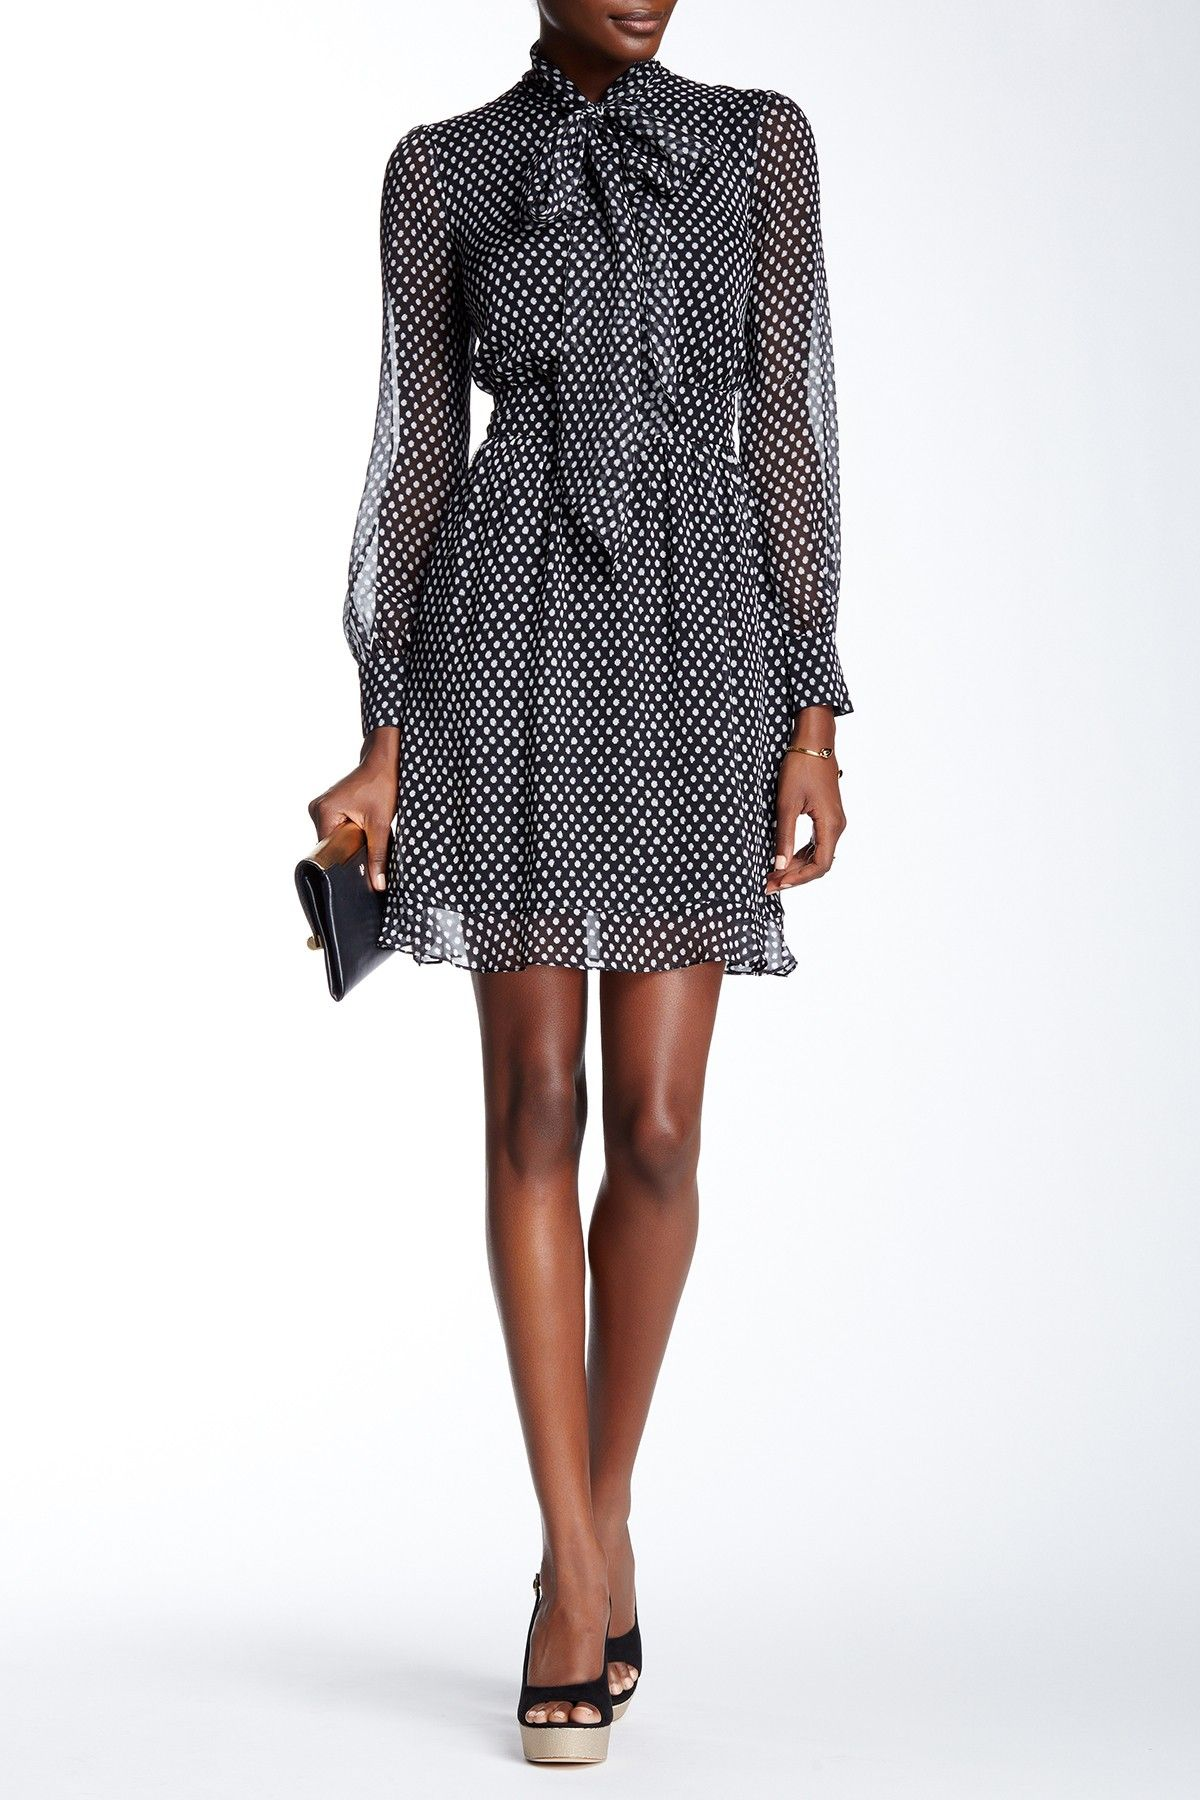 Obsessed with this Black & White Polka Dot DVF Arabella Silk Dress